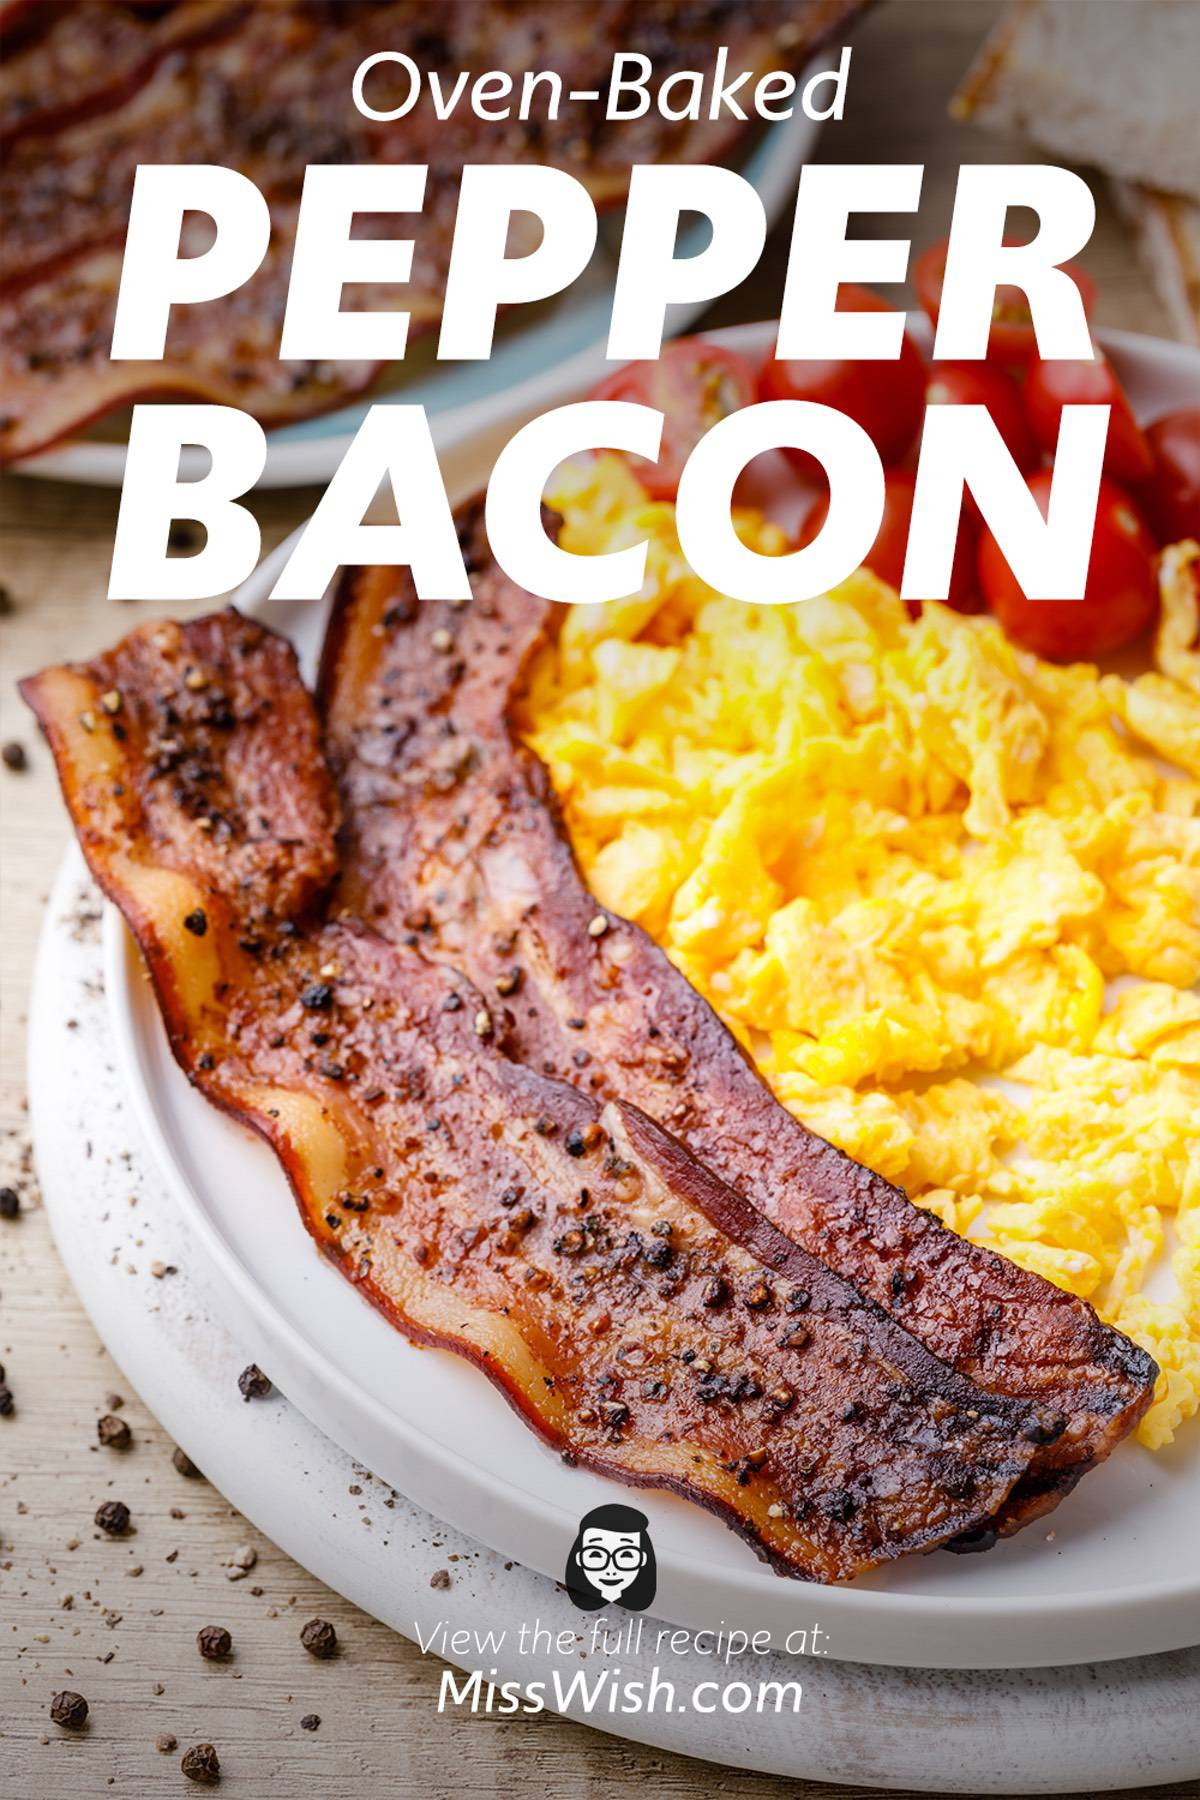 Easy 2-Ingredient Oven-Baked Pepper Bacon Recipe